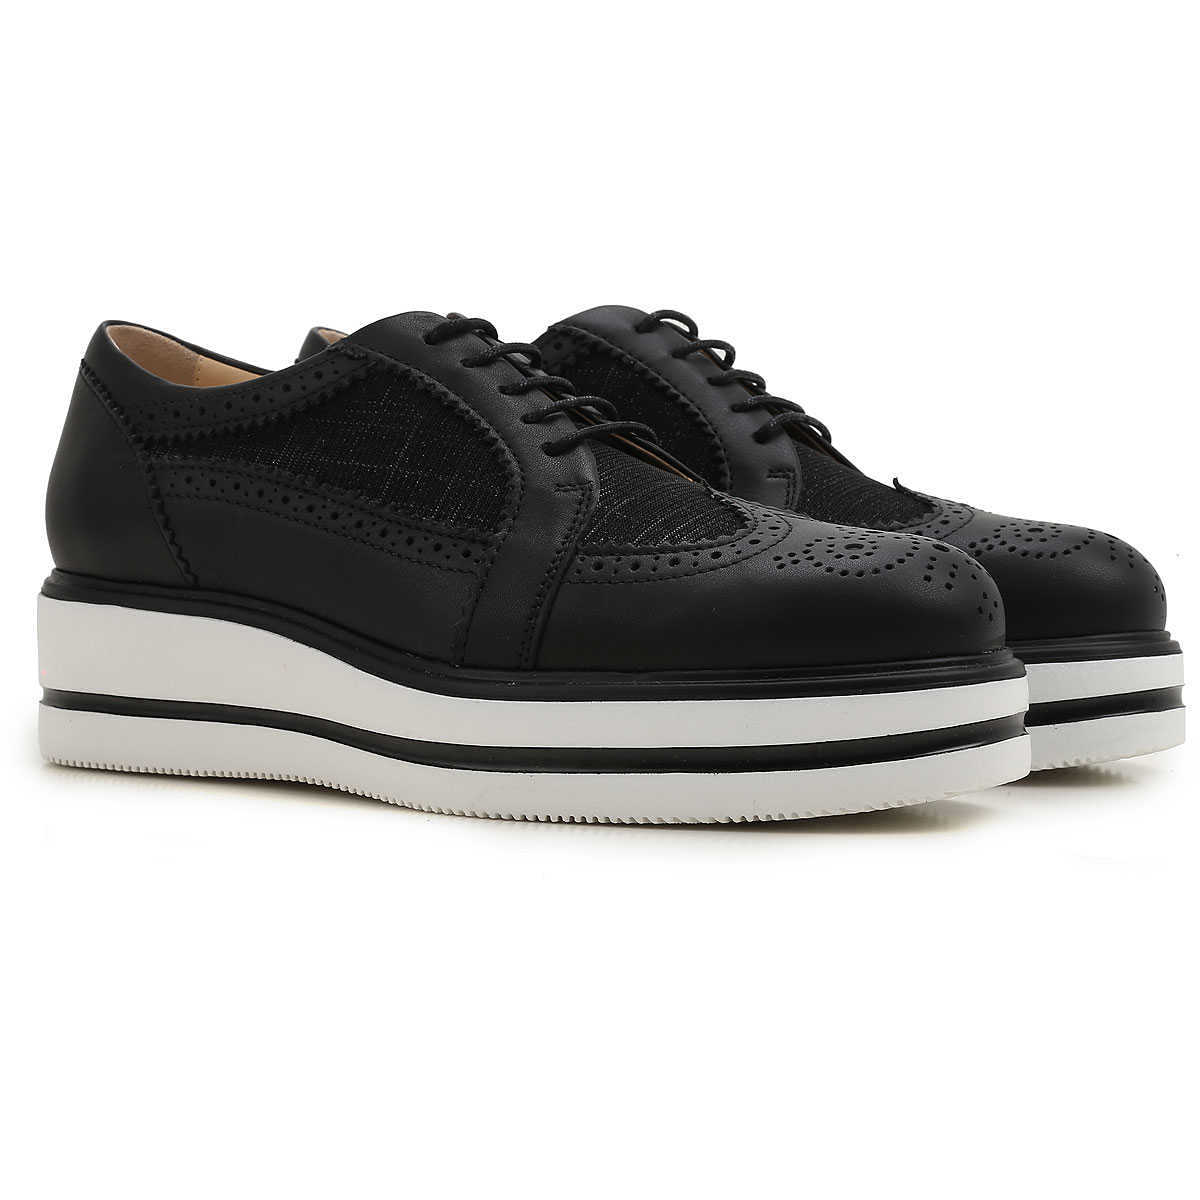 Hogan Brogues Oxford Shoes On Sale in Outlet Black DK - GOOFASH - Womens LEATHER SHOES